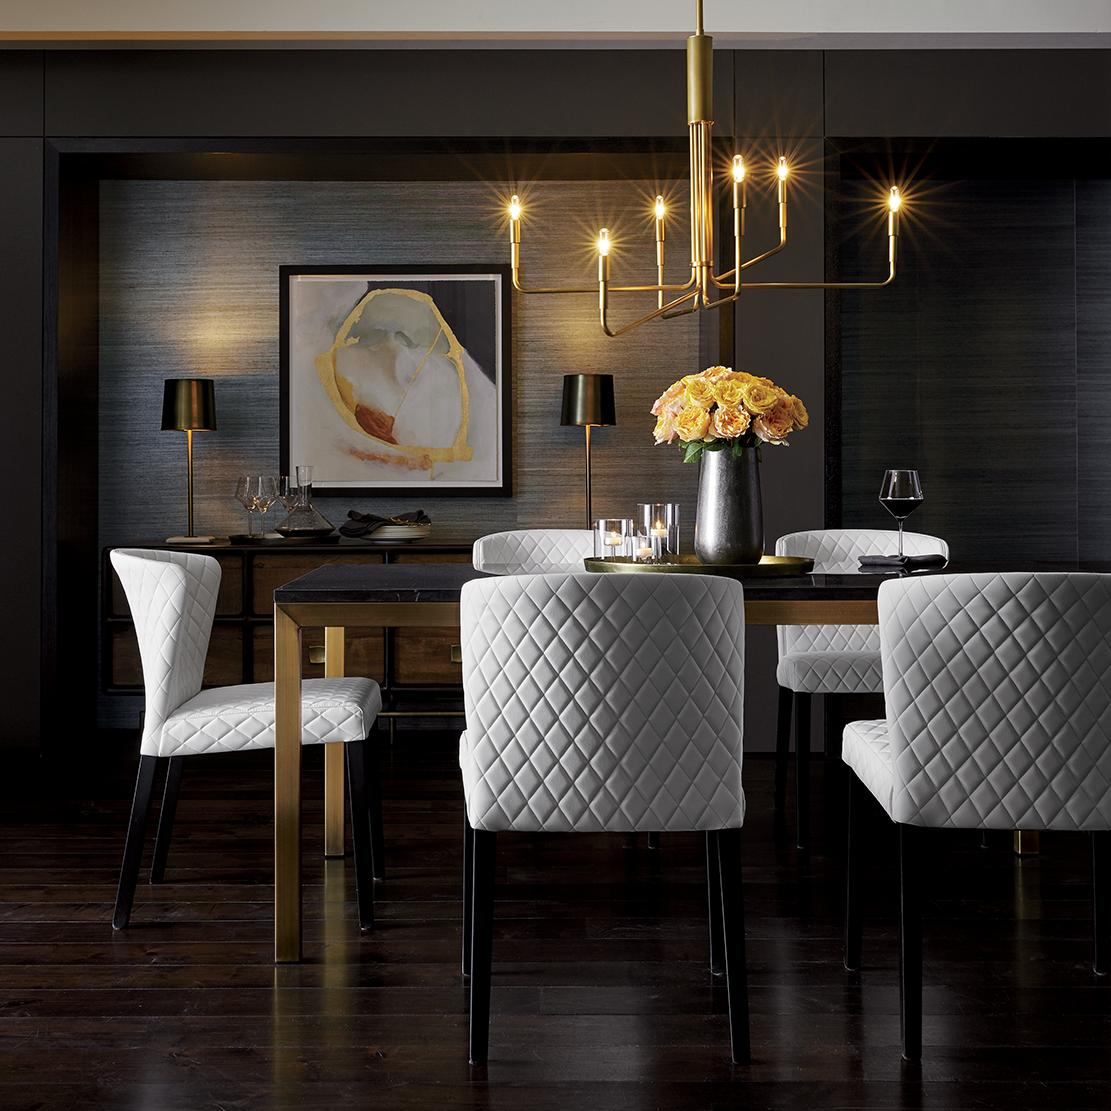 Kitchen craft cabinets atlanta - A Statement Chandelier To Wow The Dinner Party